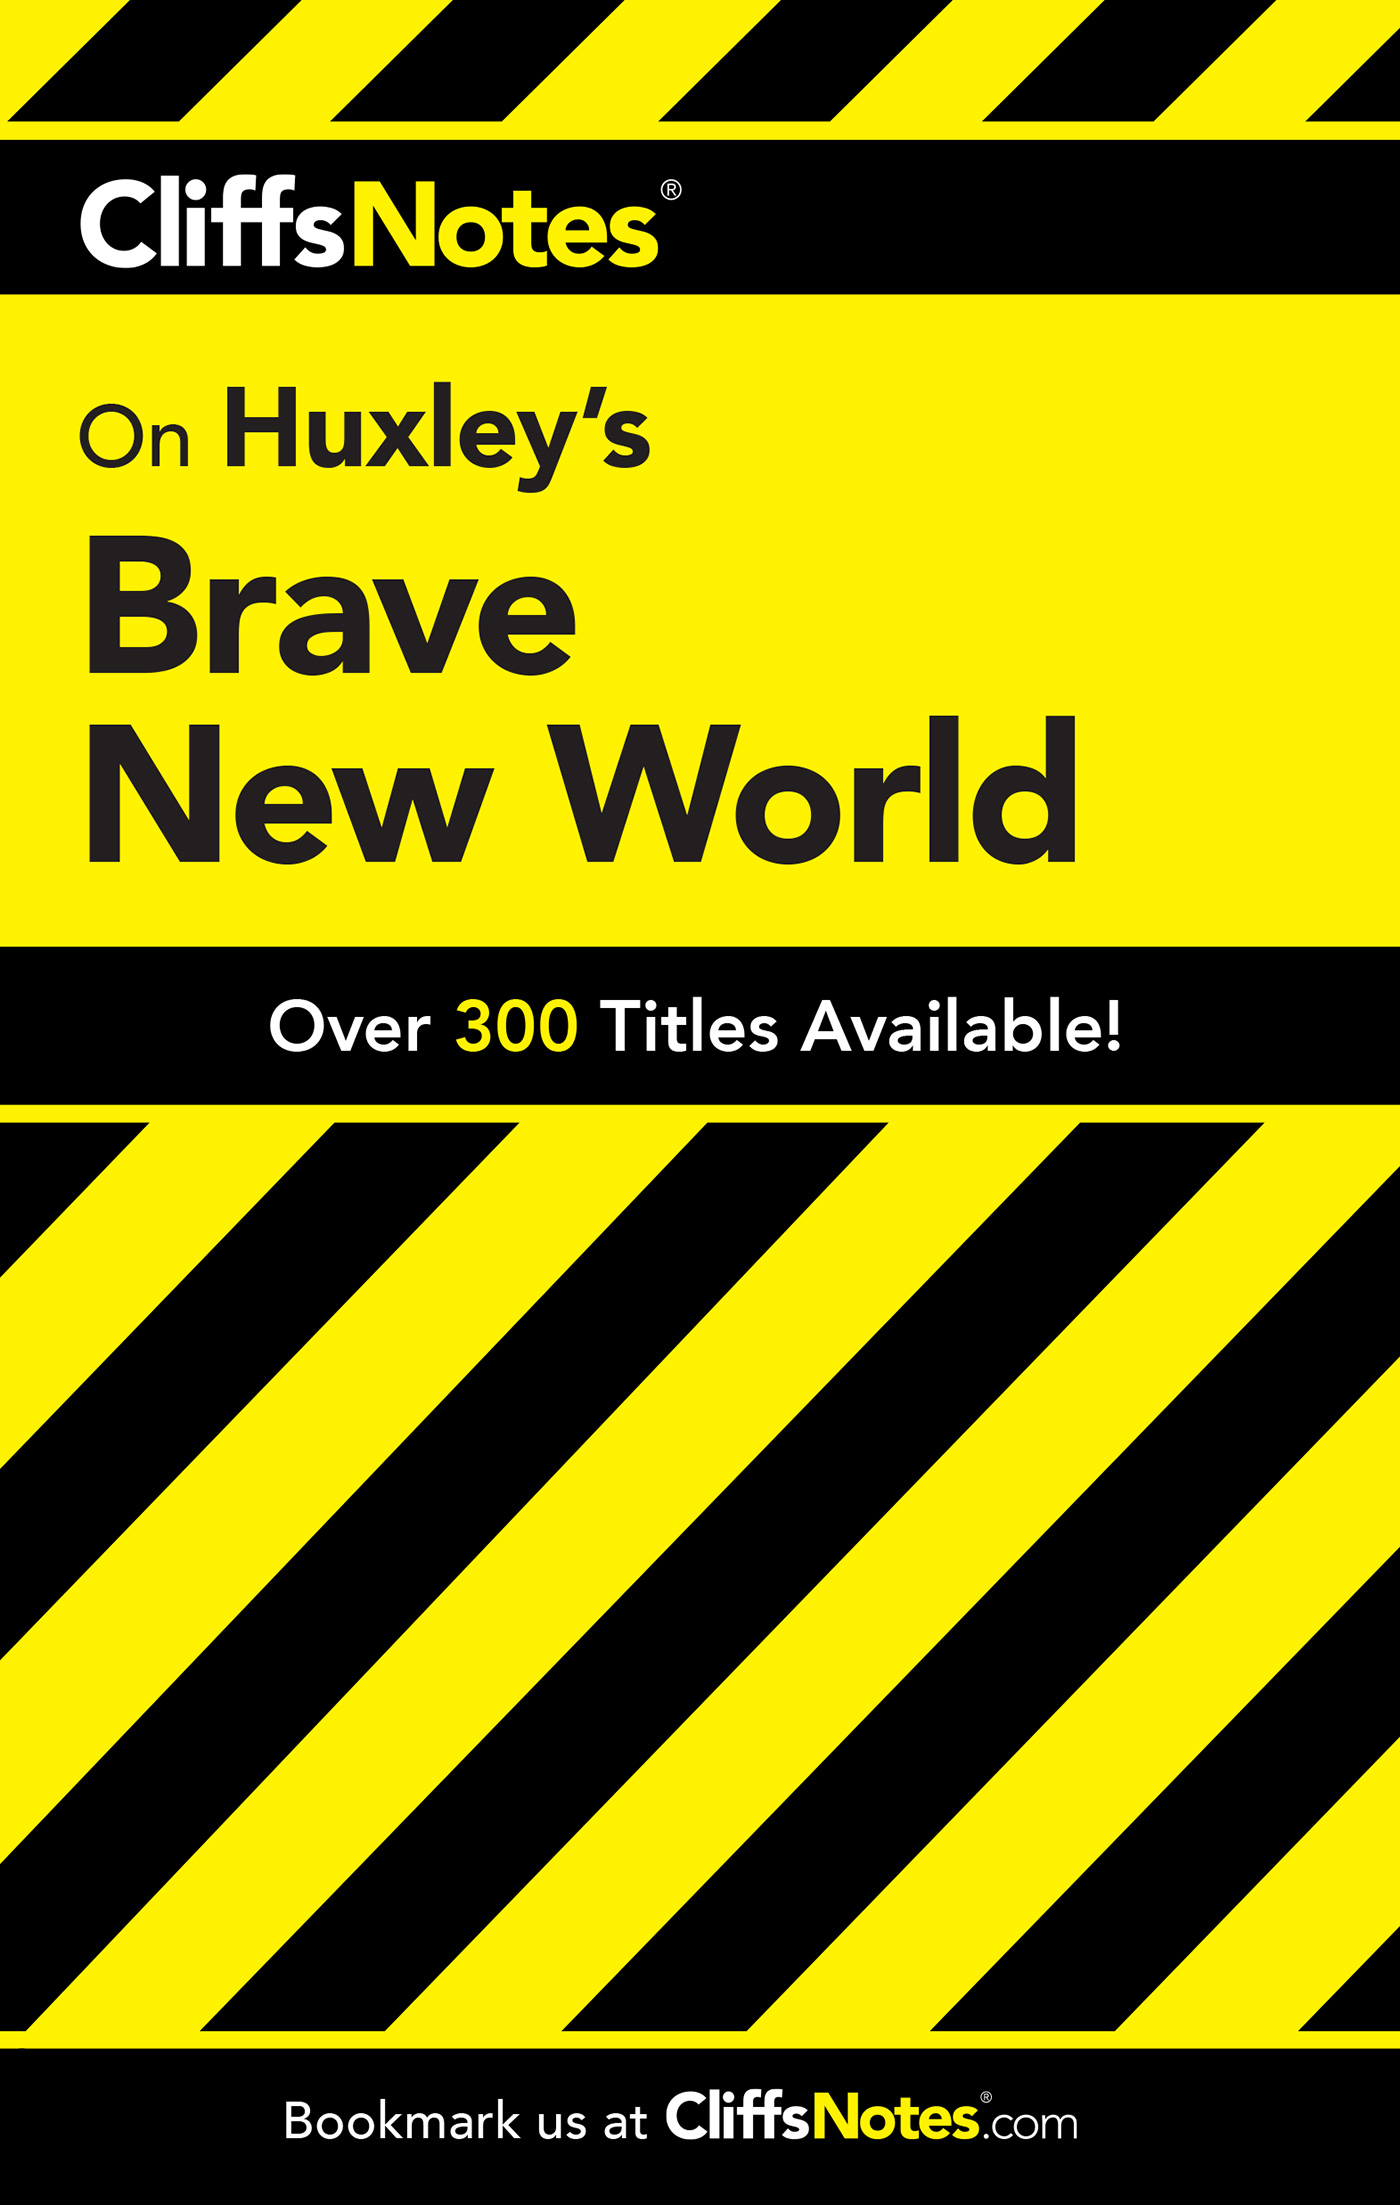 CliffsNotes on Huxley's Brave New World-9780764585838